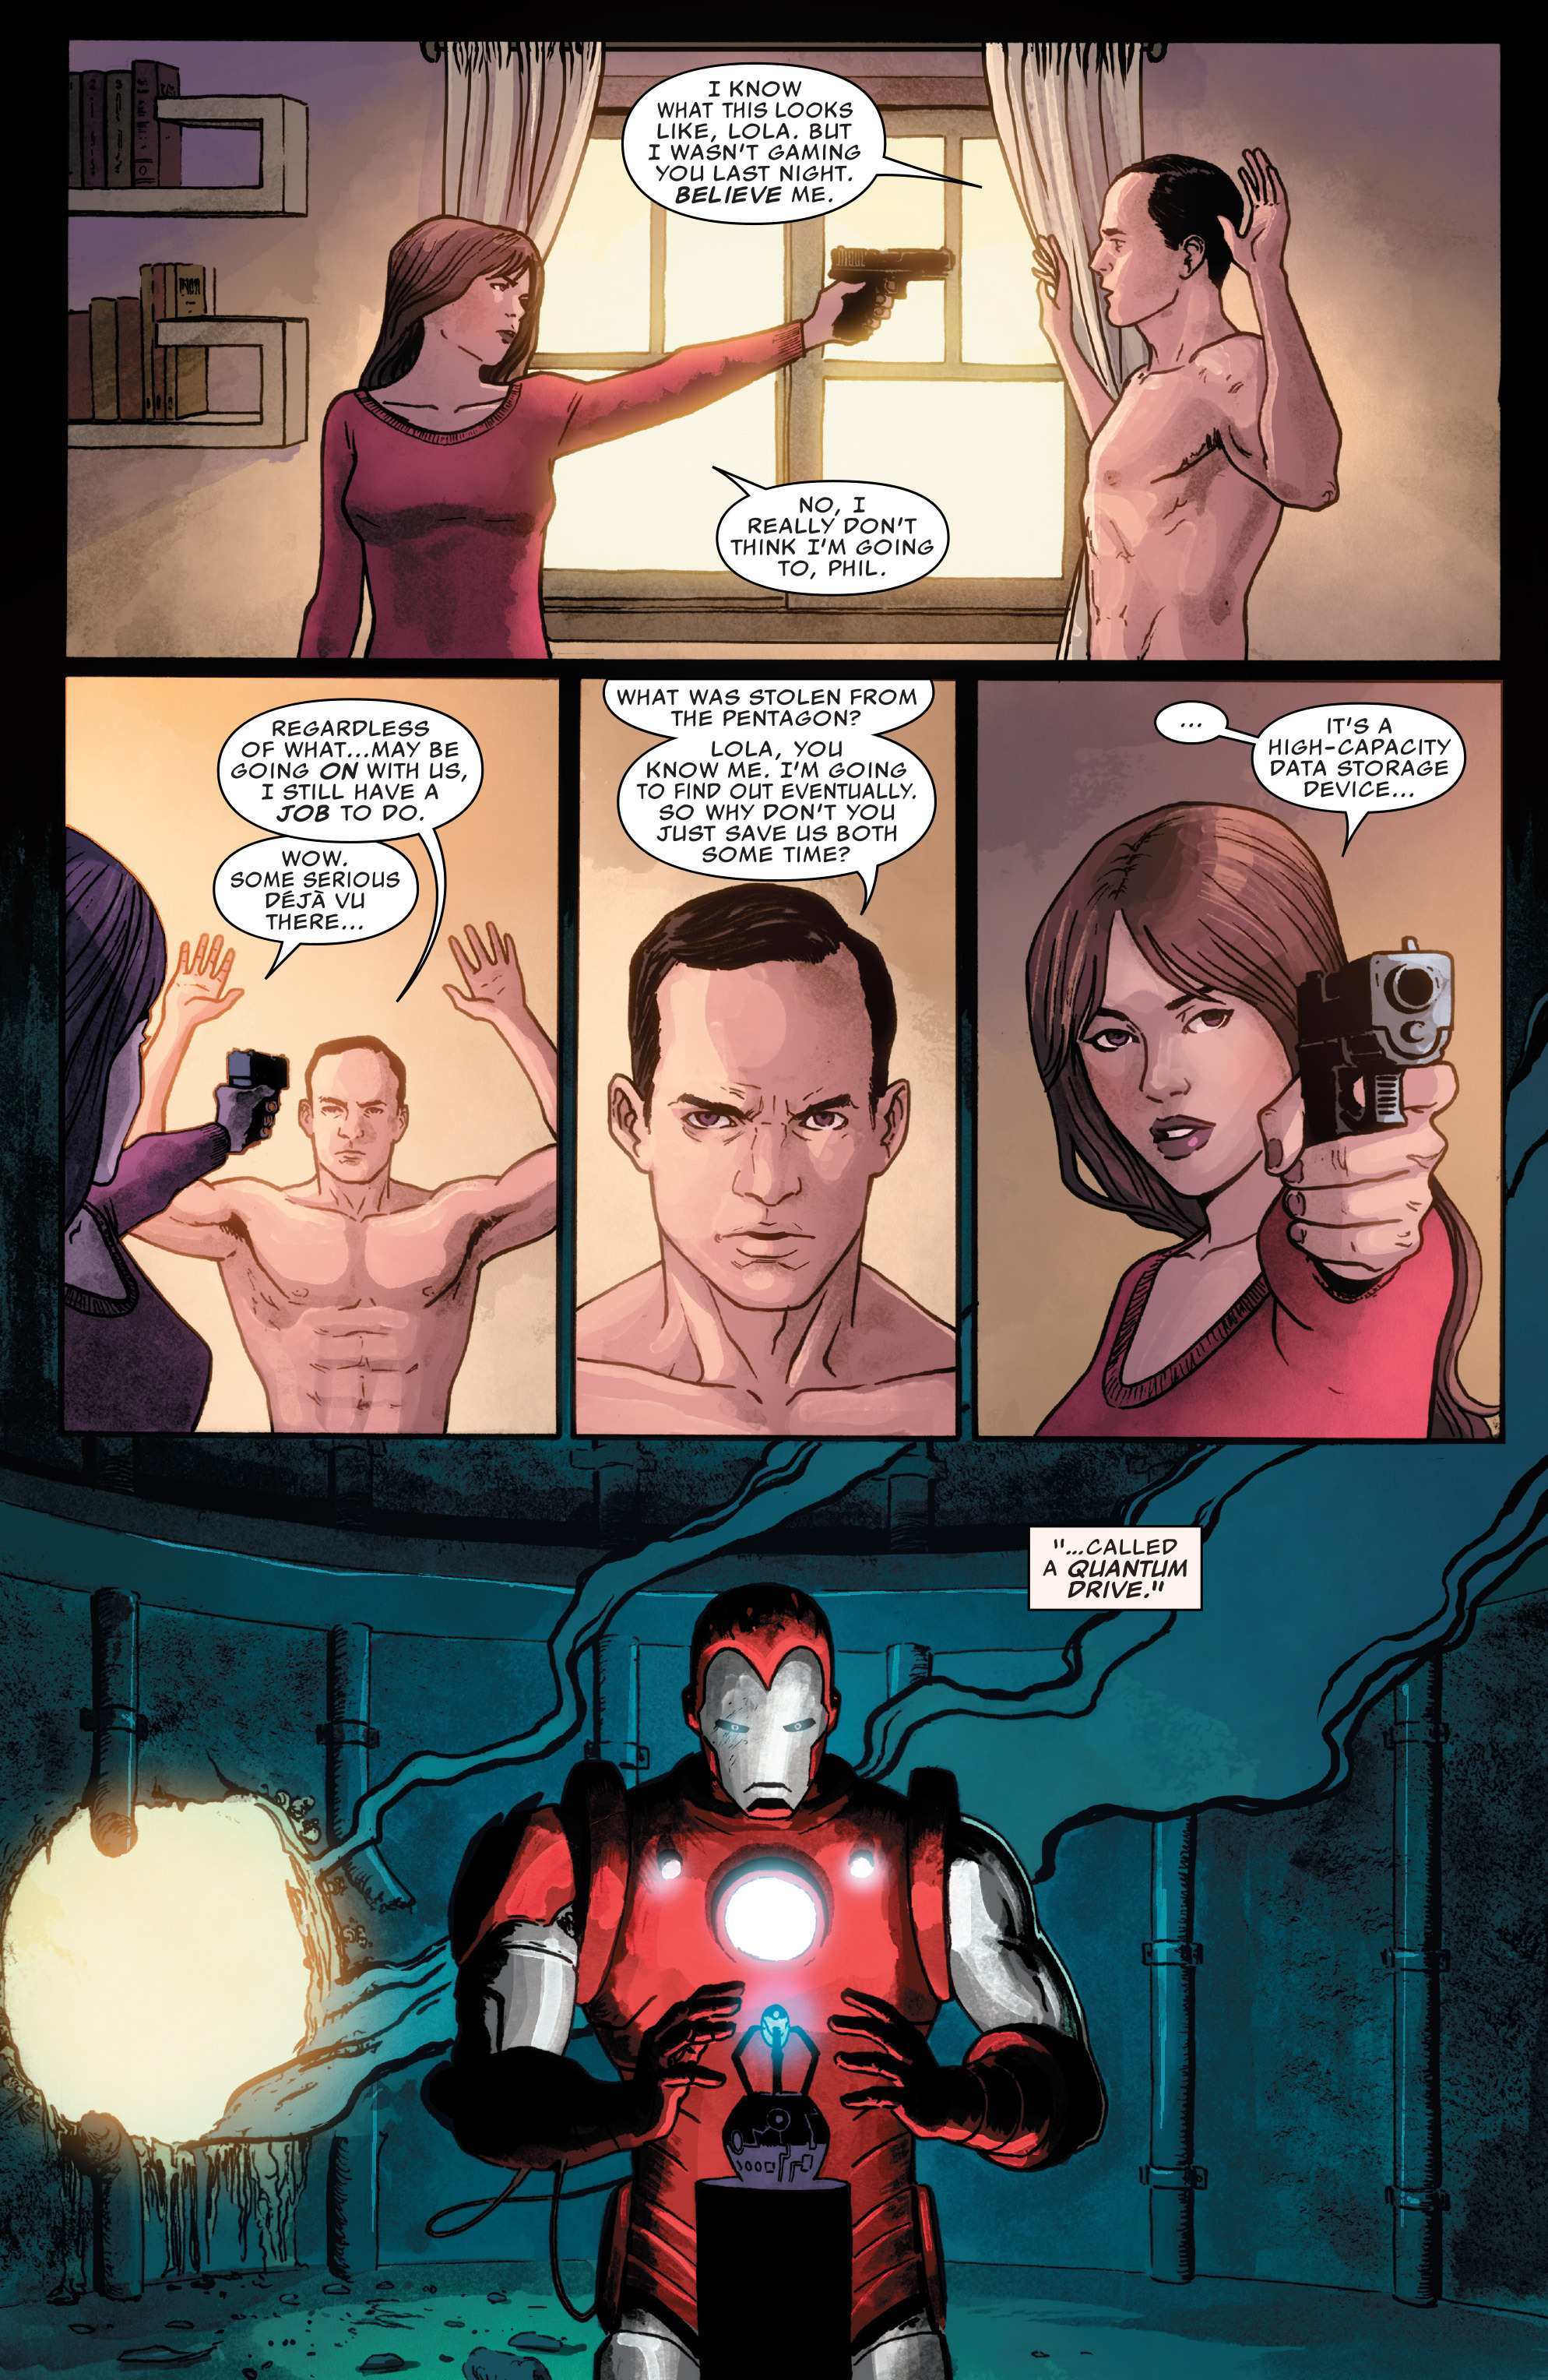 Read online Agents of S.H.I.E.L.D. comic -  Issue #1 - 20